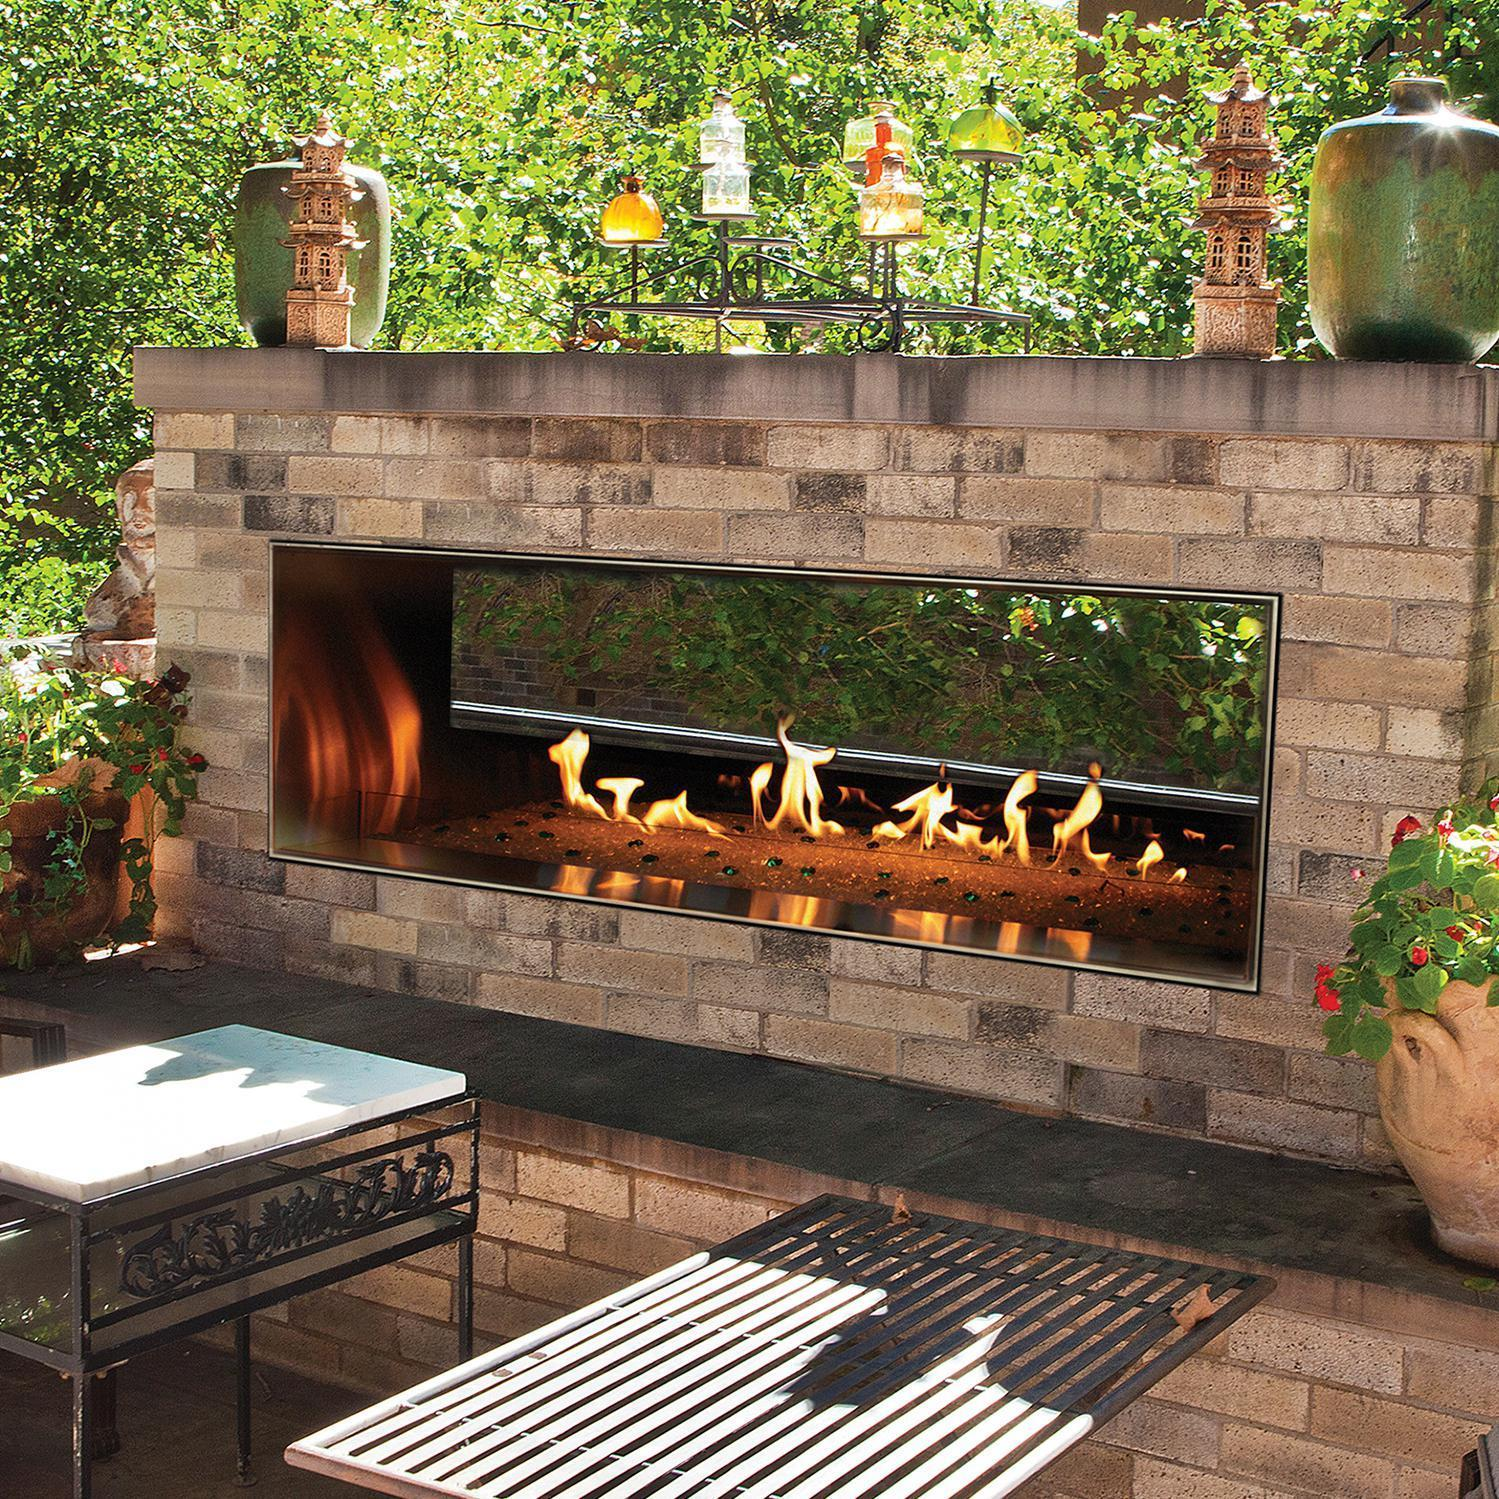 Empire Comfort Systems White Mountain Hearth By Empire Carol Rose 48 Vent Free Natural Gas Outdoor Linear See Through Fireplace In 2020 Outdoor Fireplace Designs Outdoor Gas Fireplace Backyard Fireplace